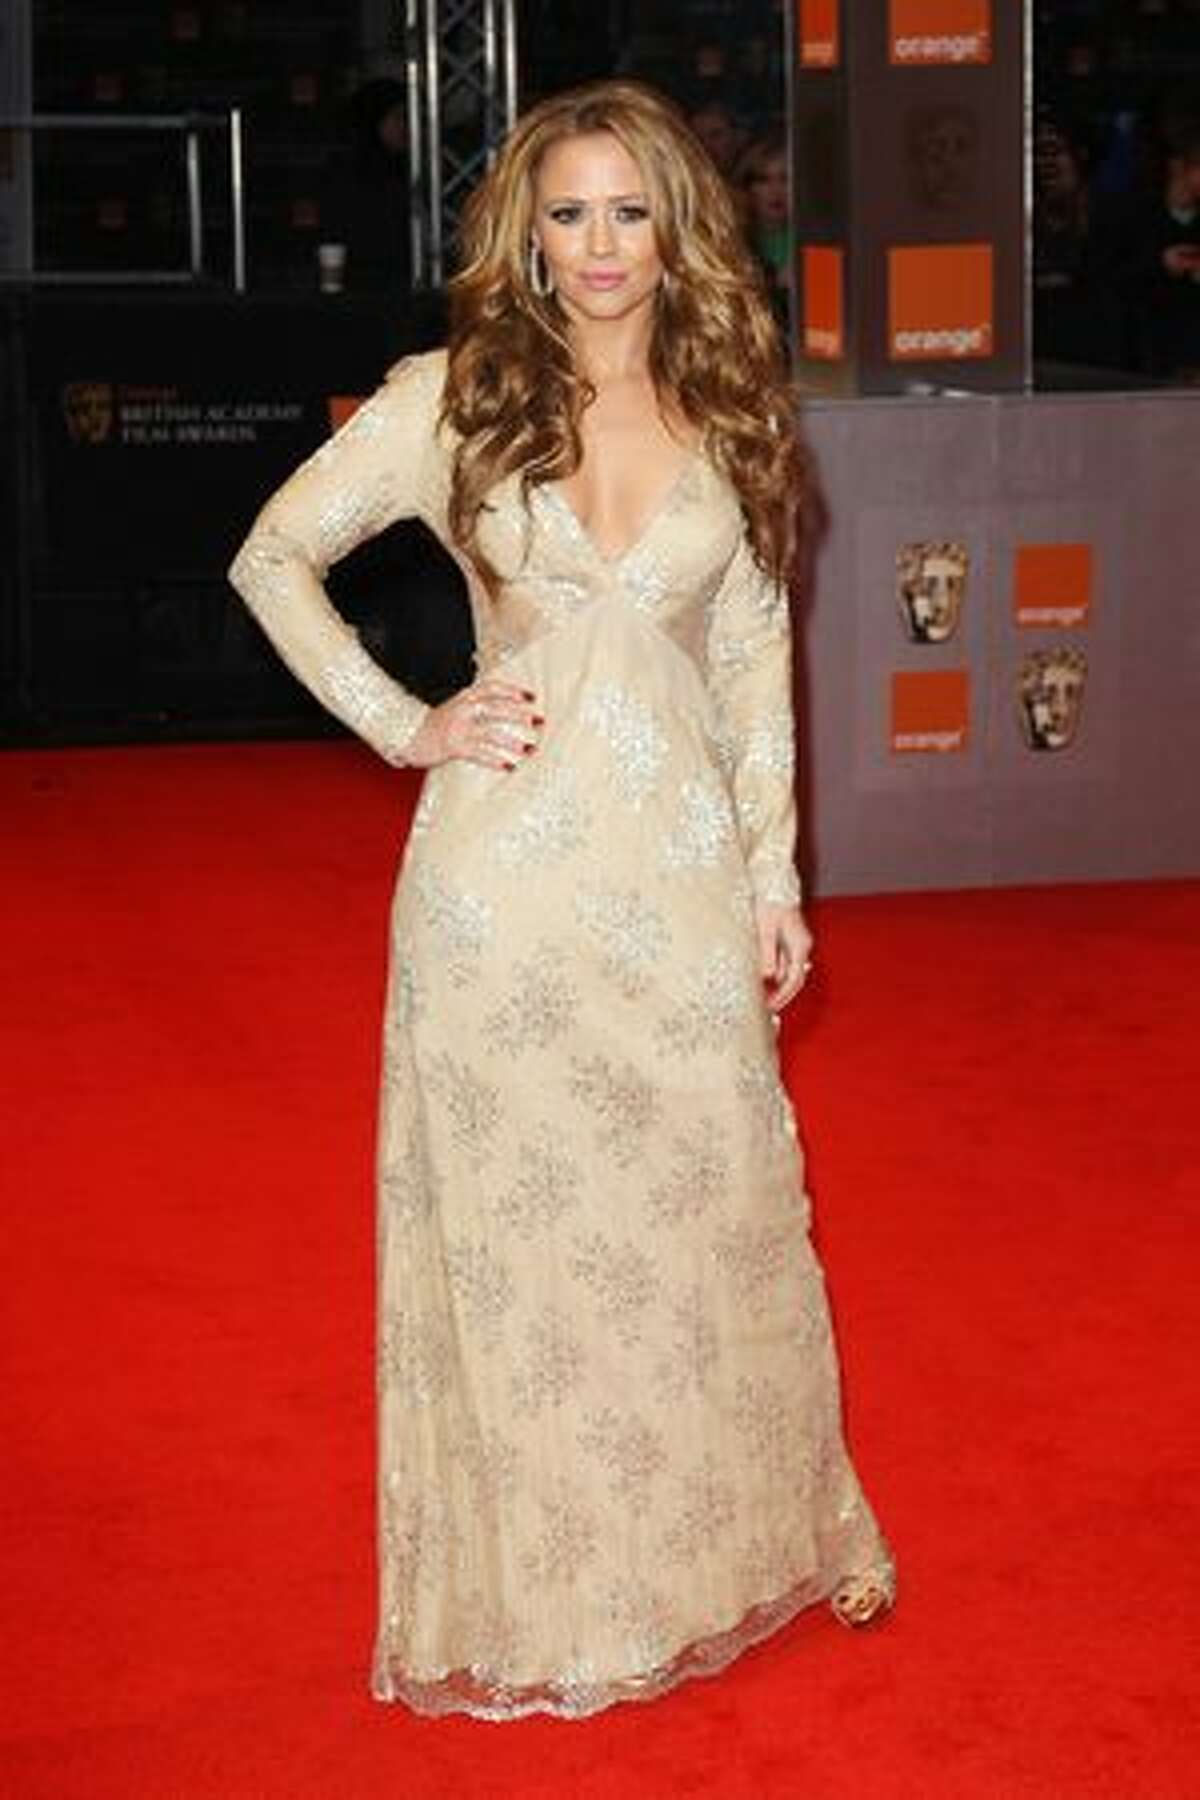 Kimberley Walsh arrives at the Orange British Academy Film Awards 2011 held at The Royal Opera House in London, England.